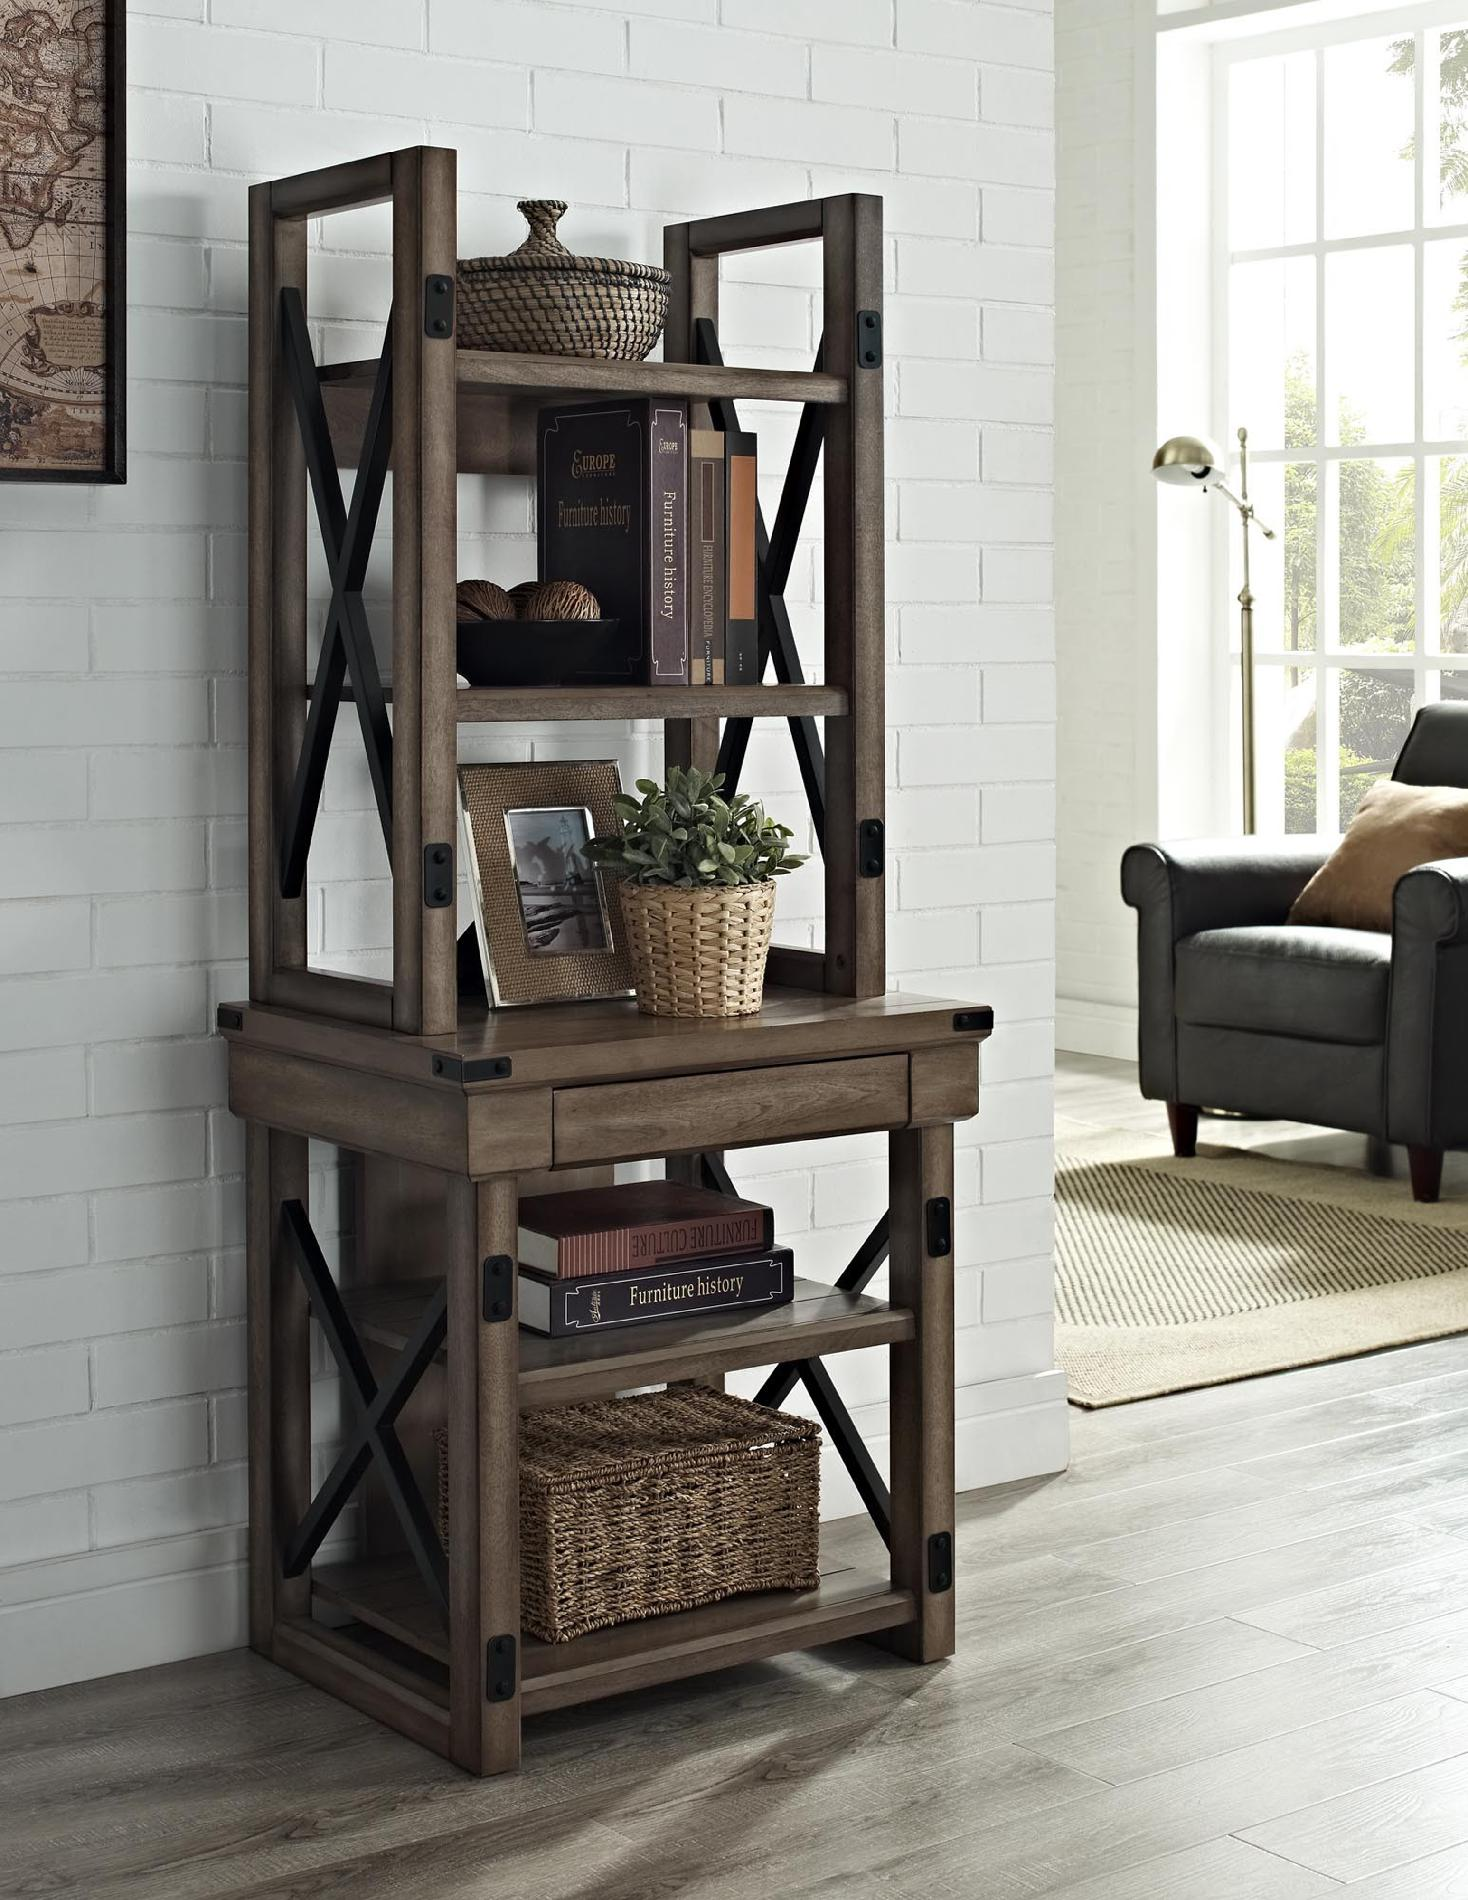 Upc 029986131706 Dorel Home Furnishings Wildwood Rustic